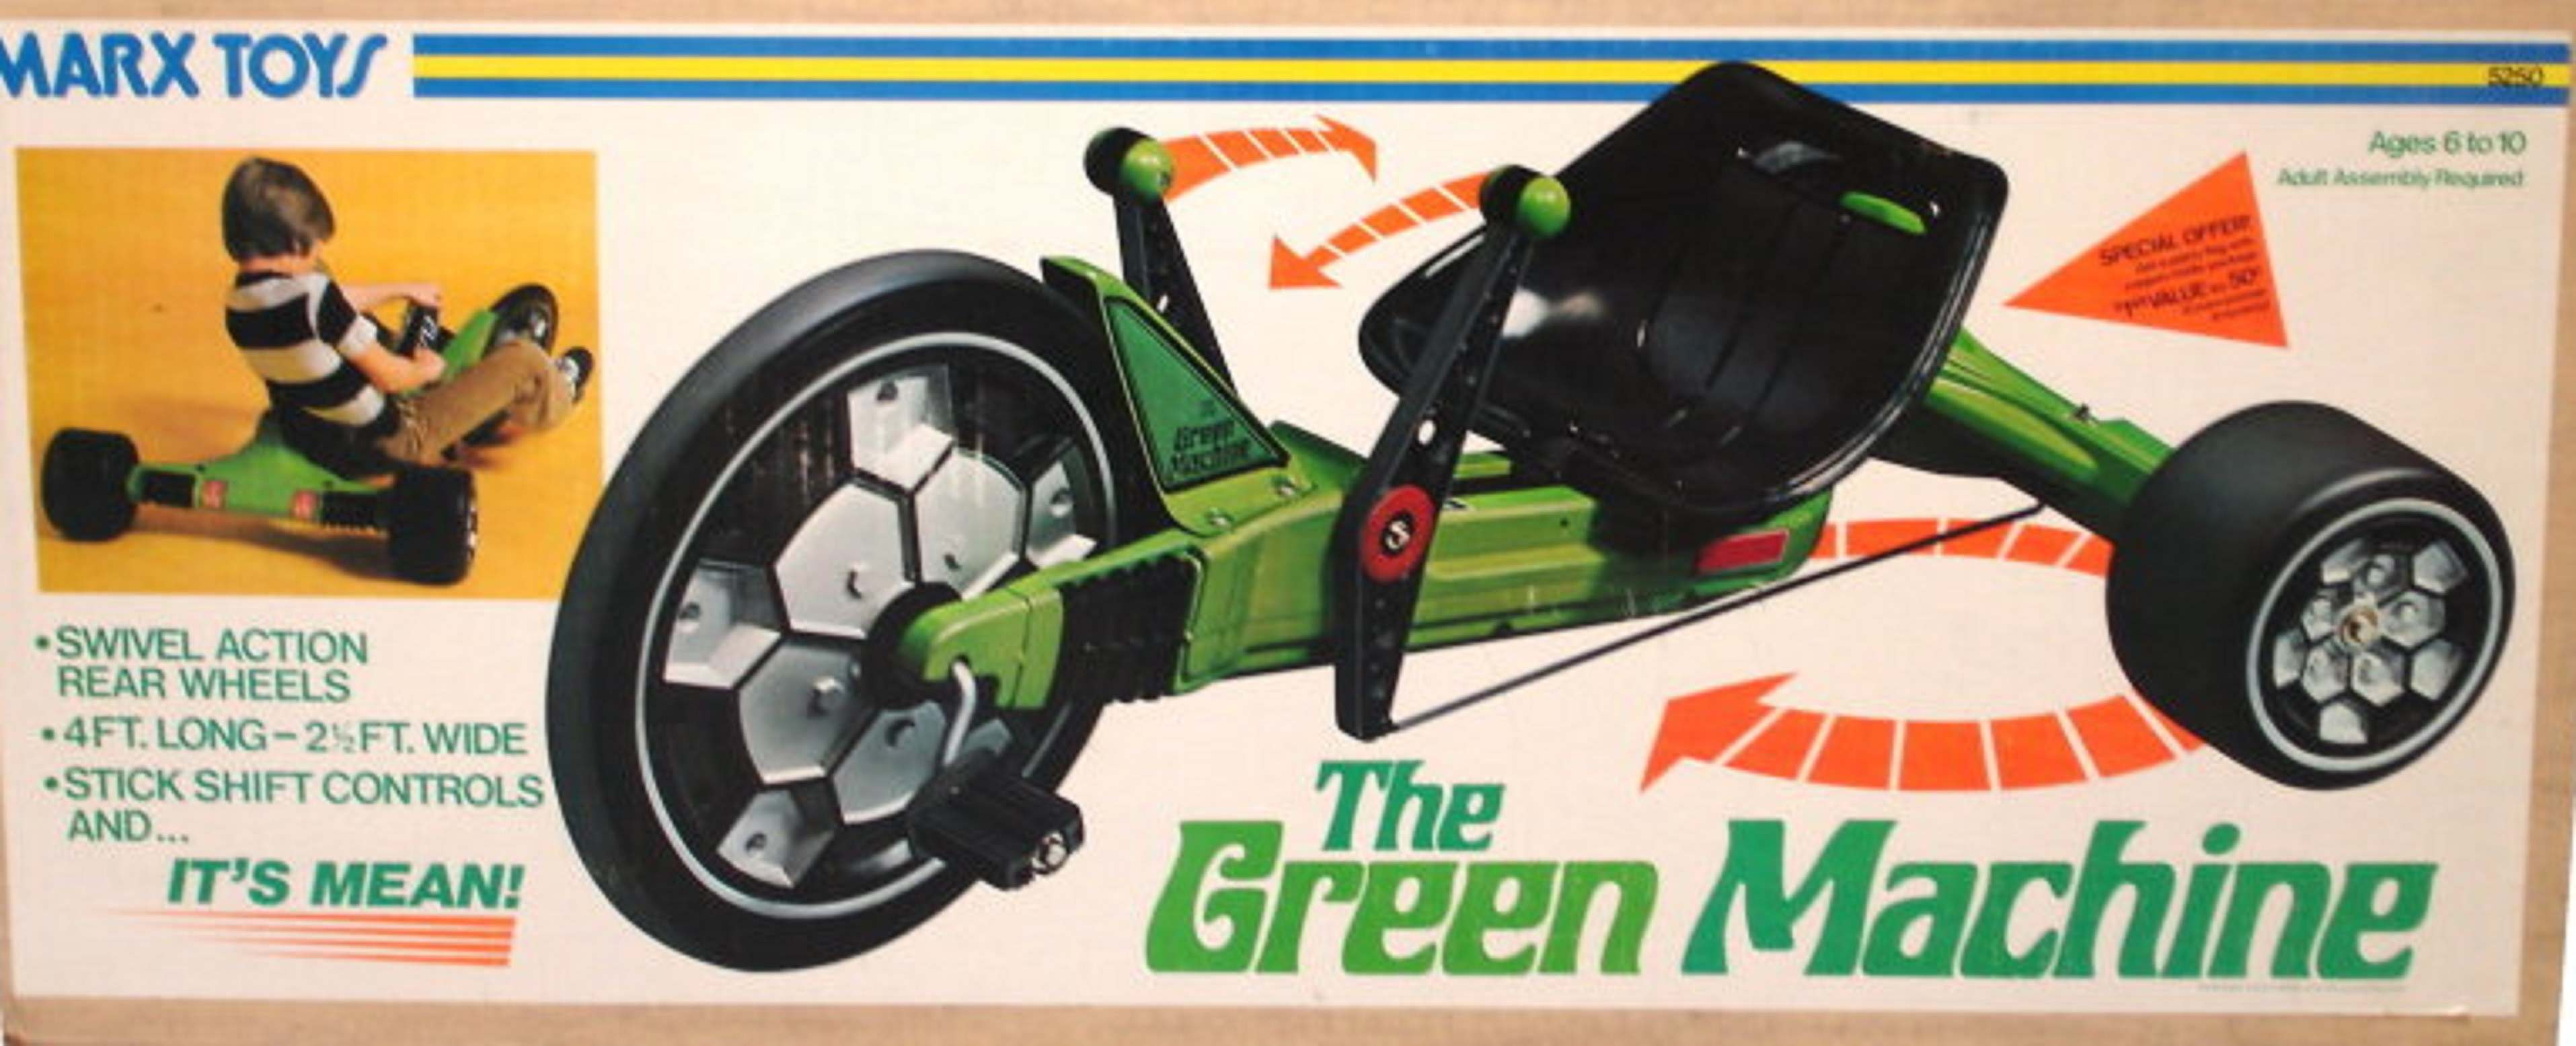 Marx's Green Machine